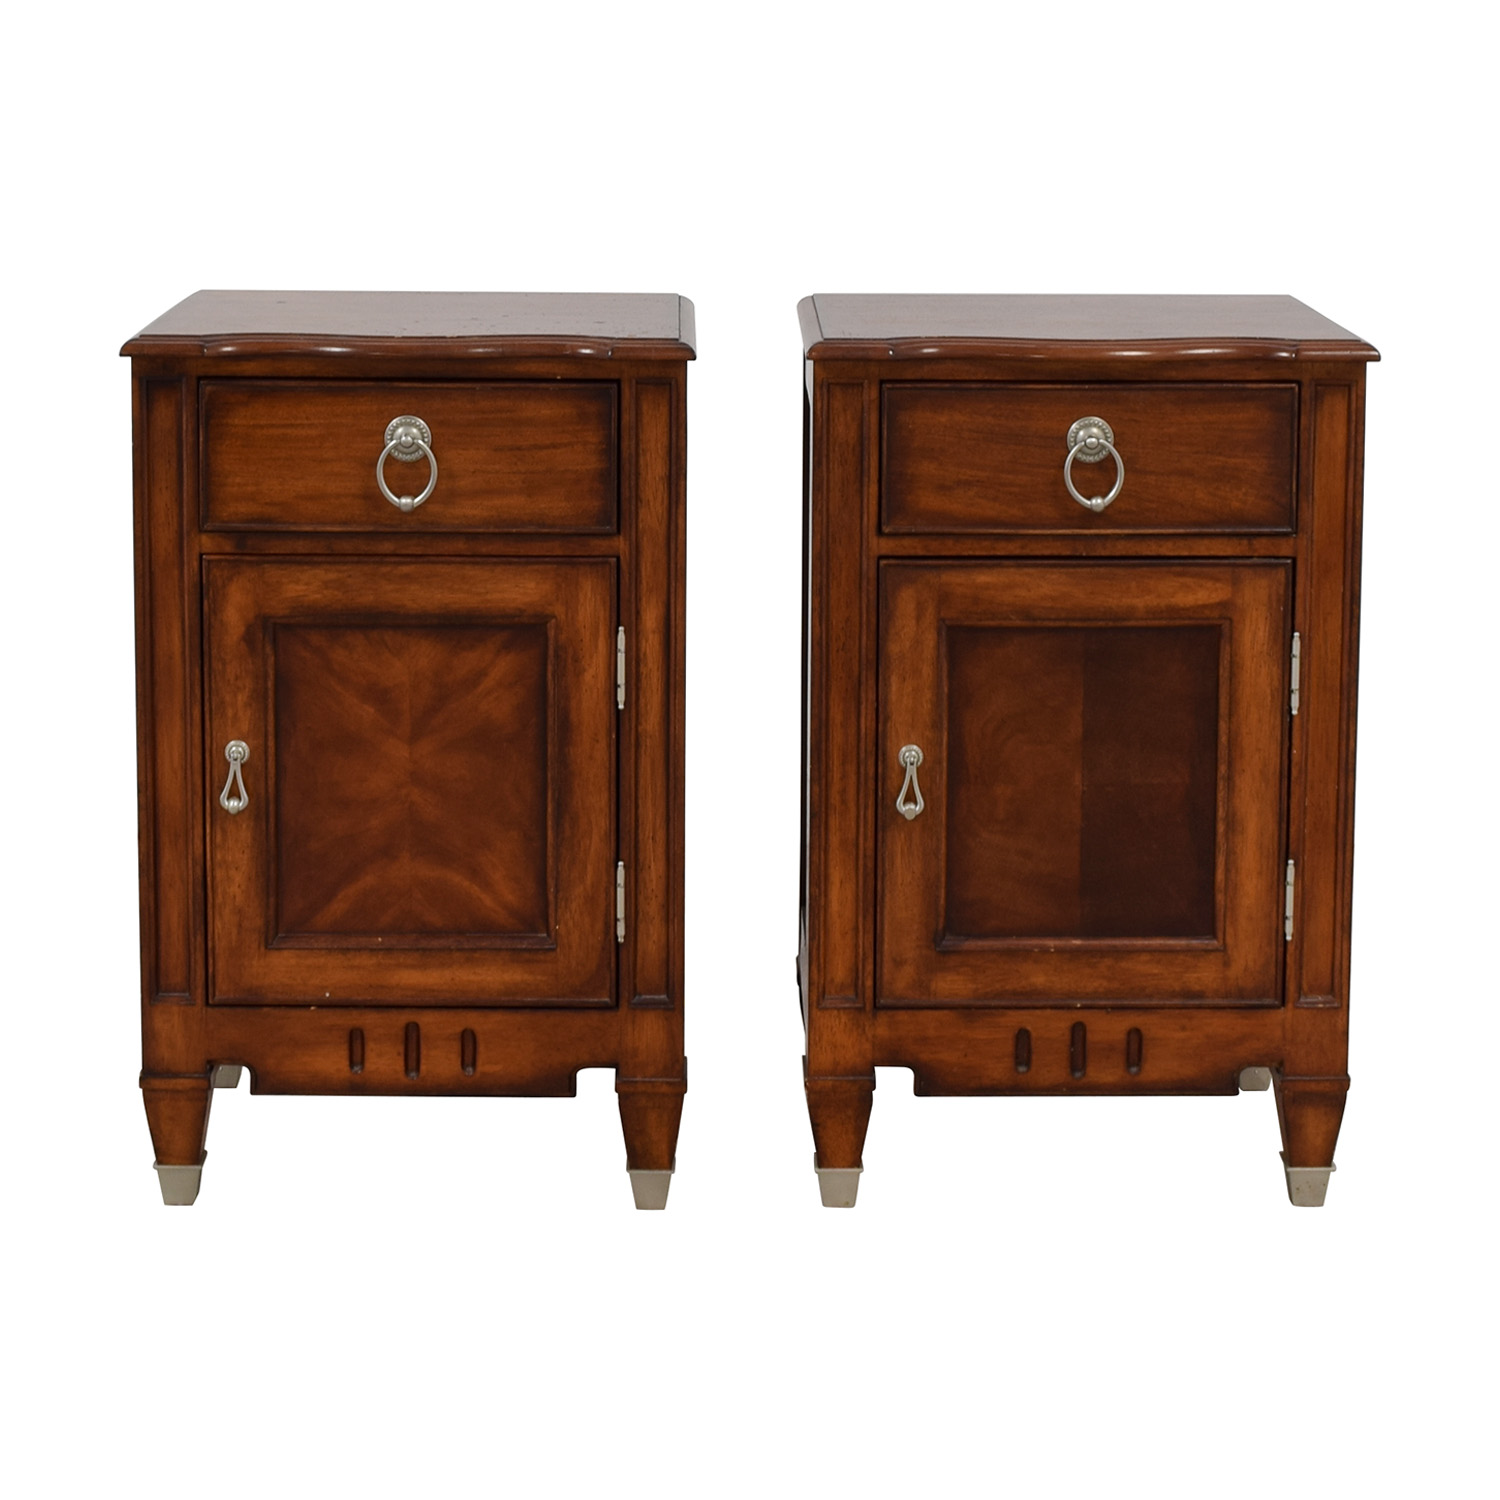 Liz Claiborne Nightstands / Tables